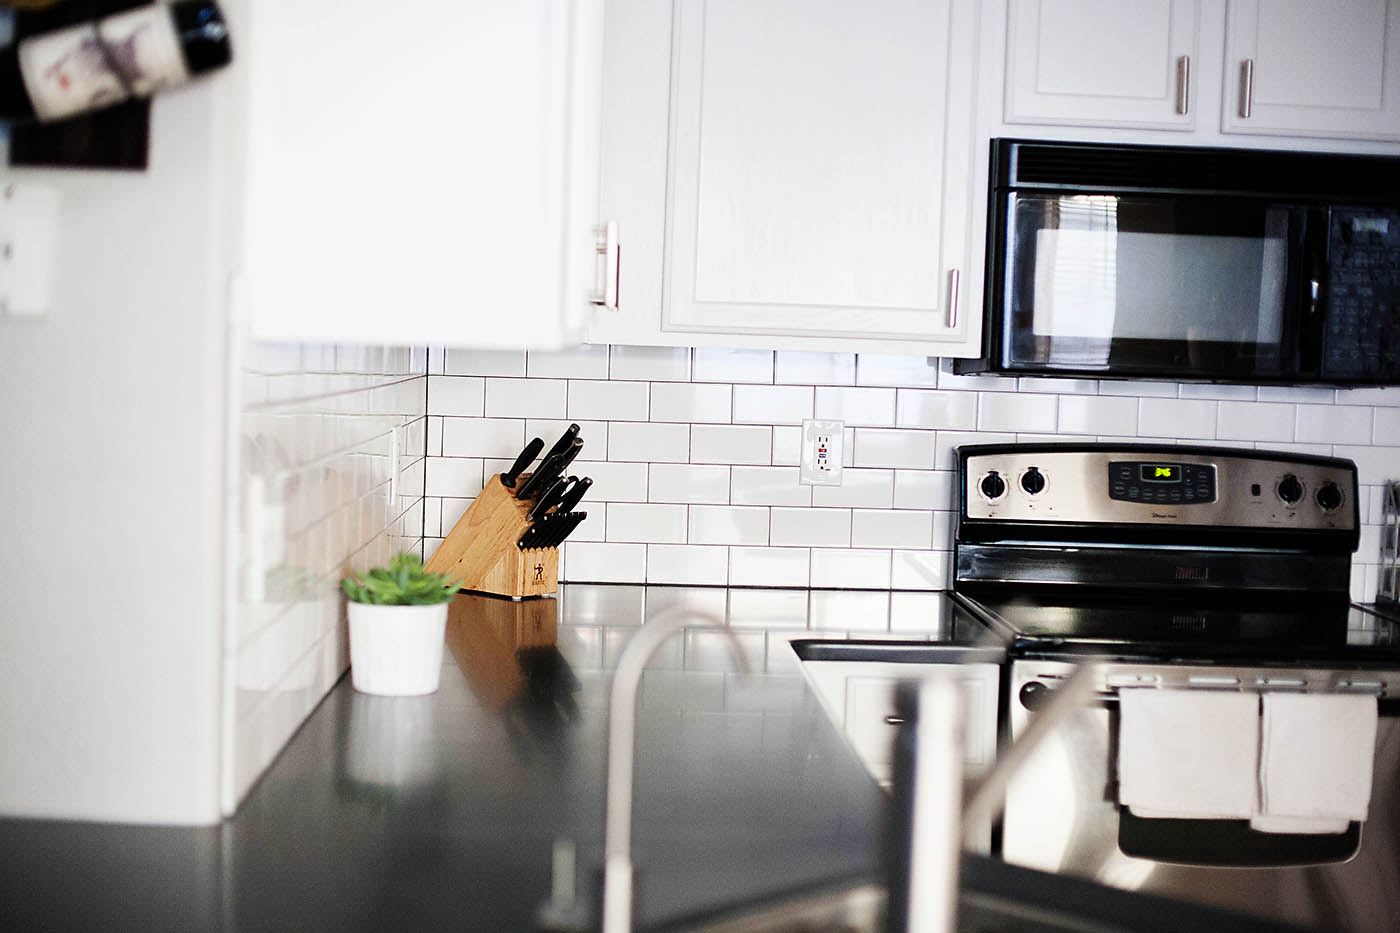 Shaw Floors Resilient Vinyl + DIY Kitchen Update: 3 Years Later